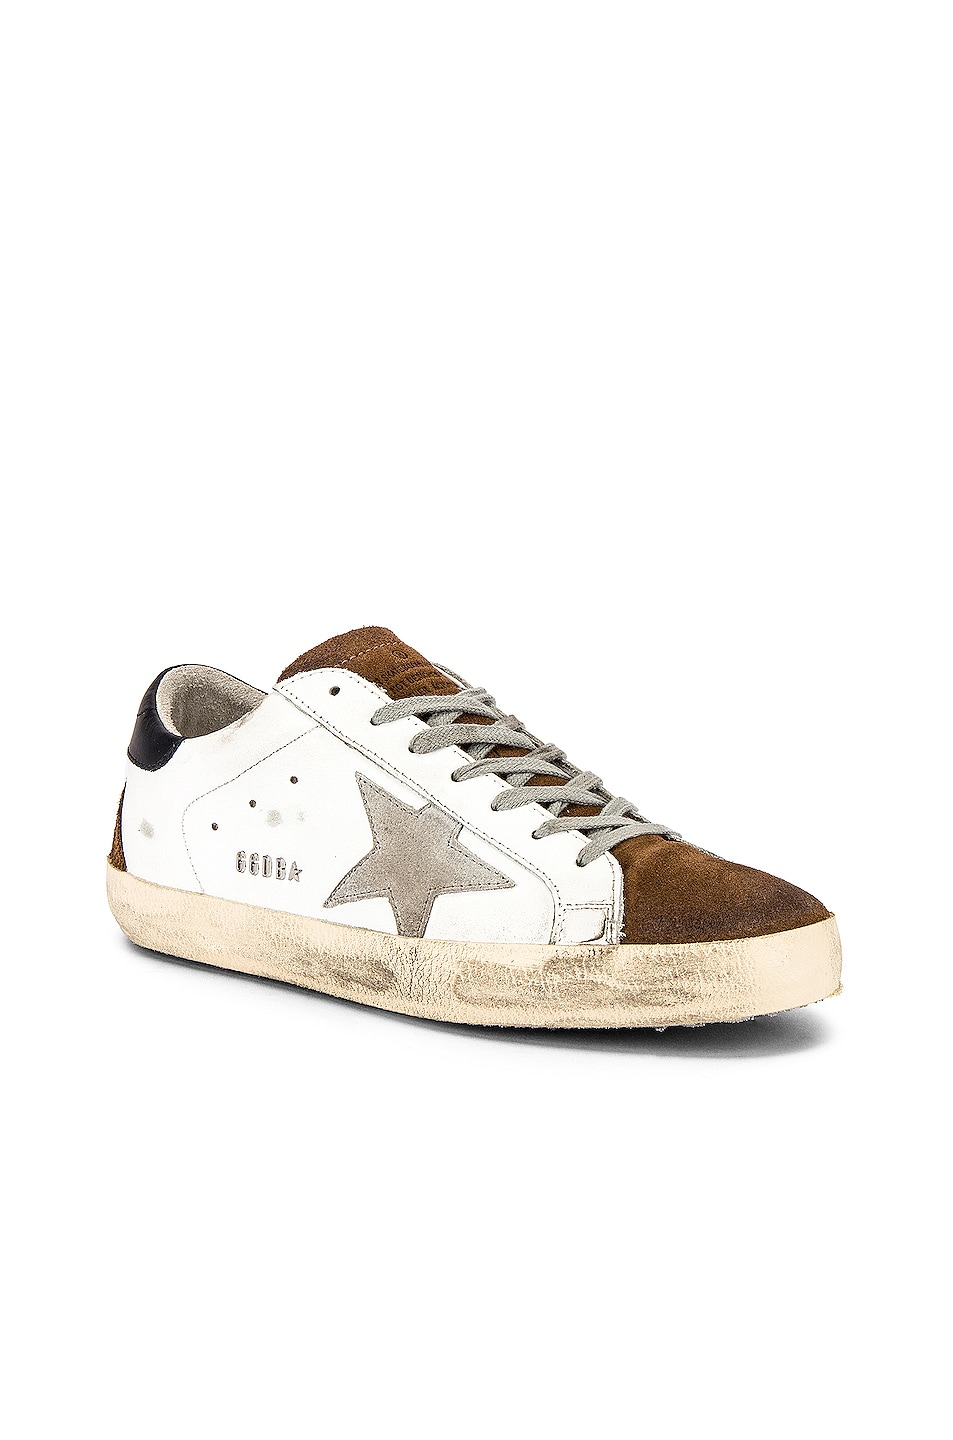 Image 1 of Golden Goose Superstar Sneaker in White Mud Suede & Ice Star